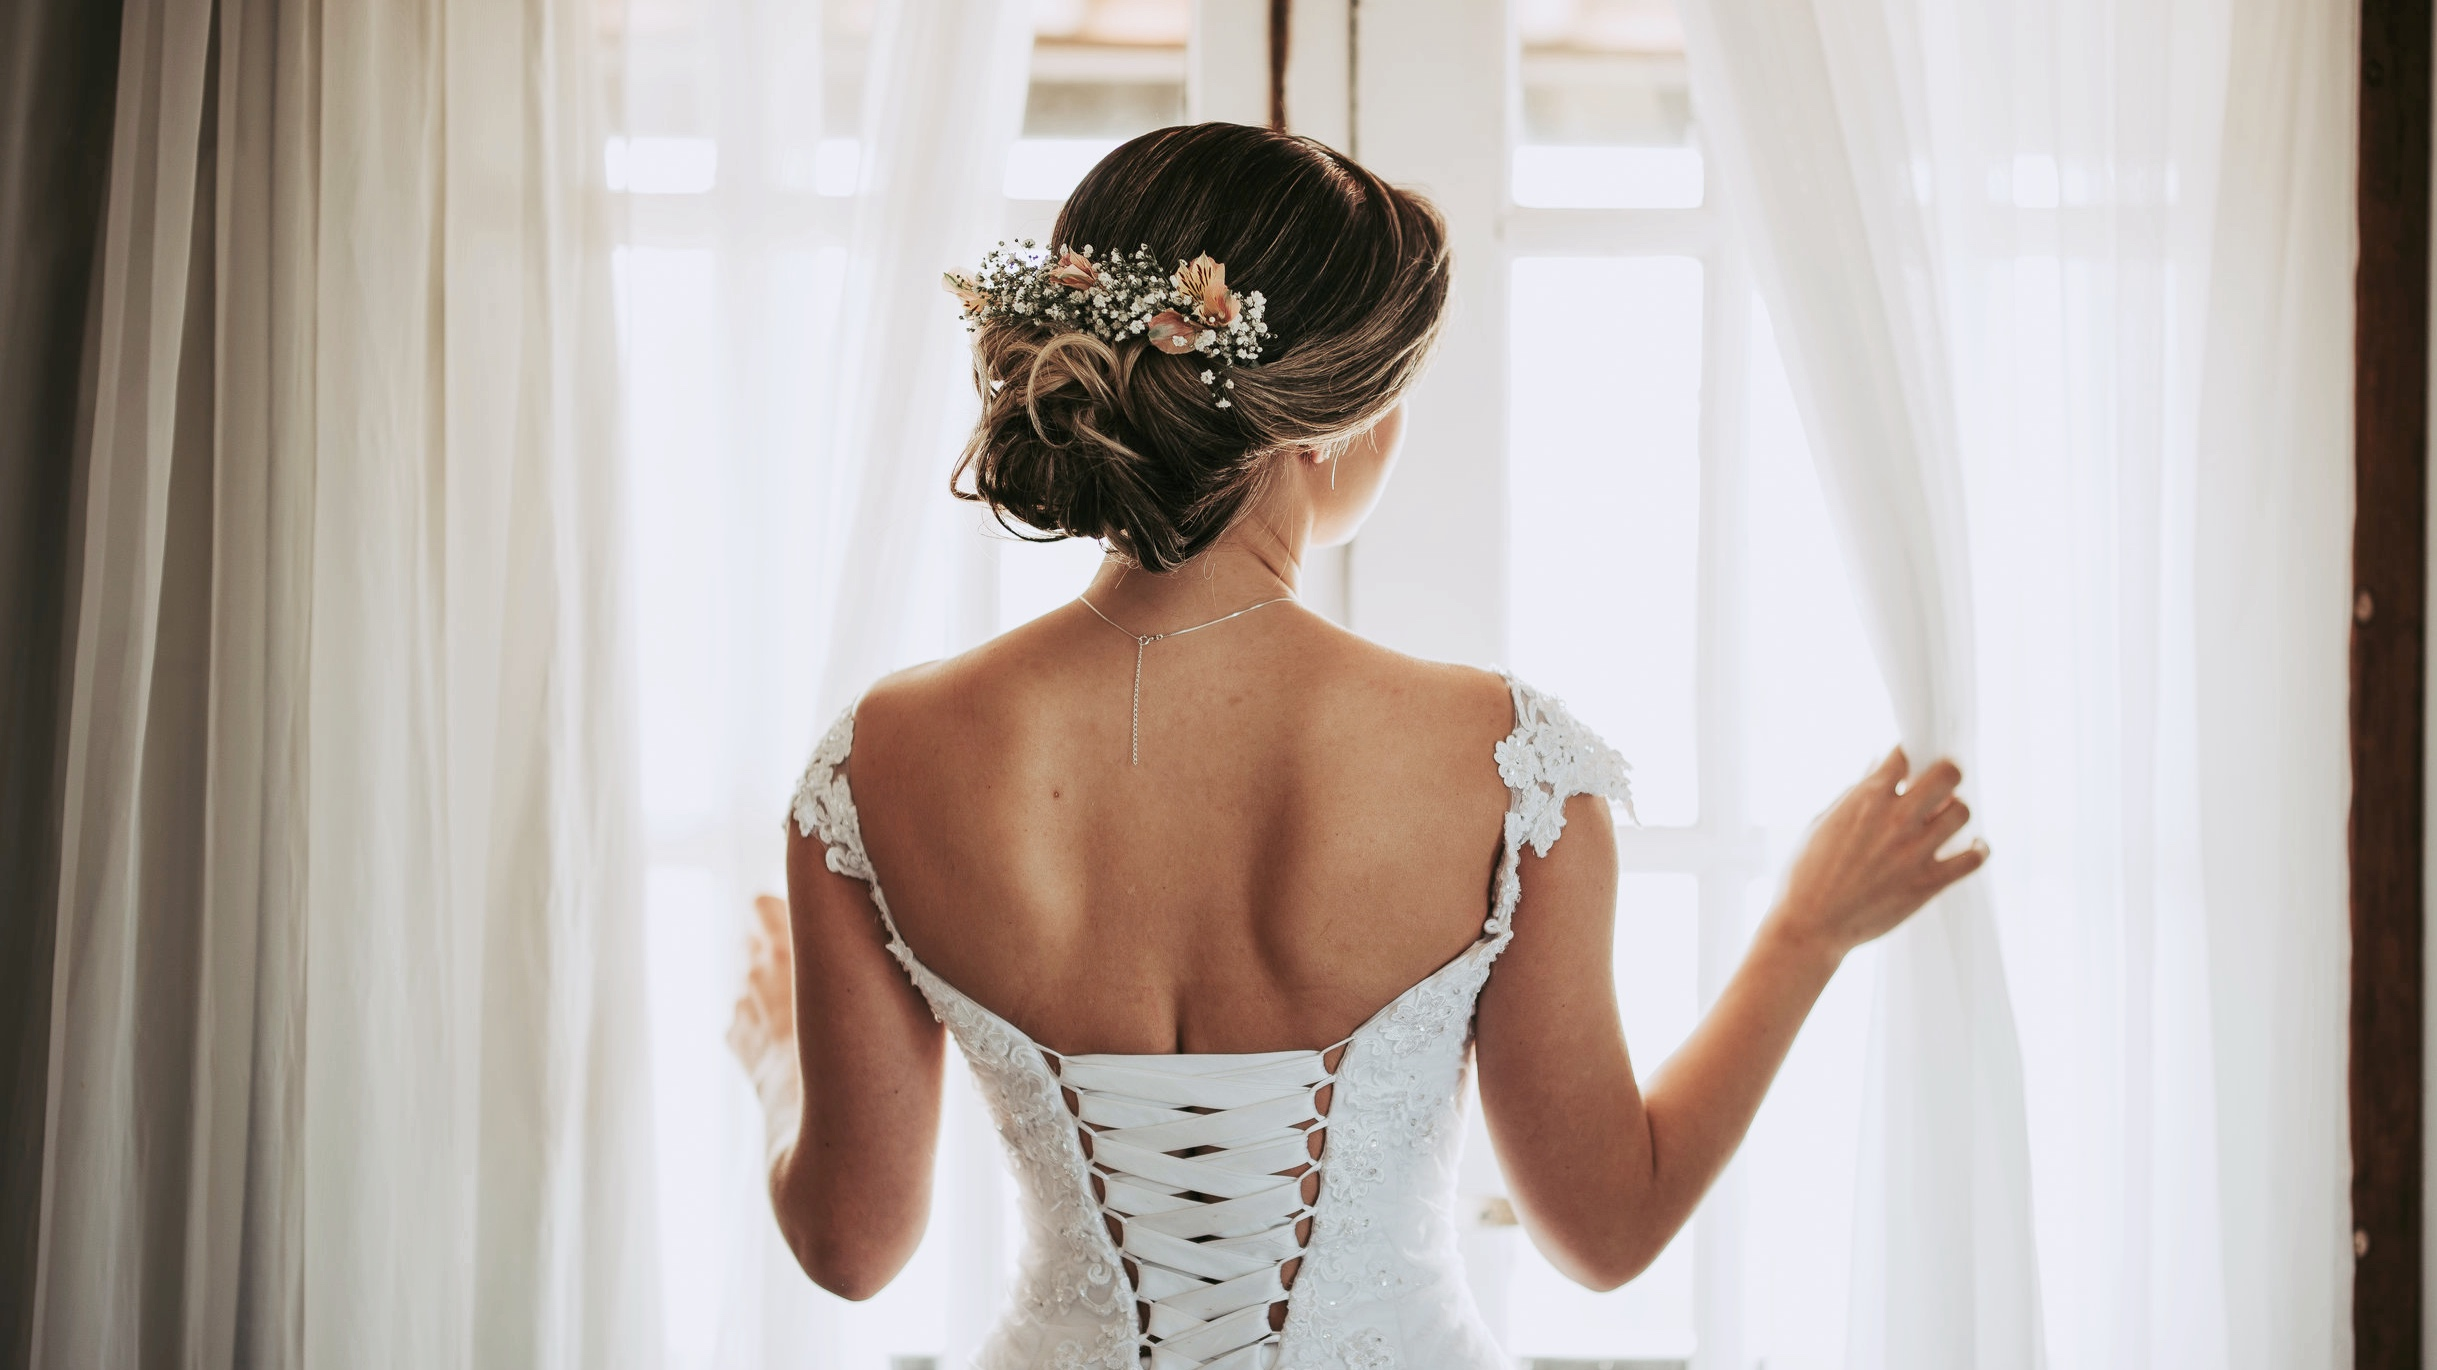 Weddings & Events - All bridal parties require a credit card on file to hold a date. 48 hour cancellation notice is required to avoid a no-show charge of $50 per person.